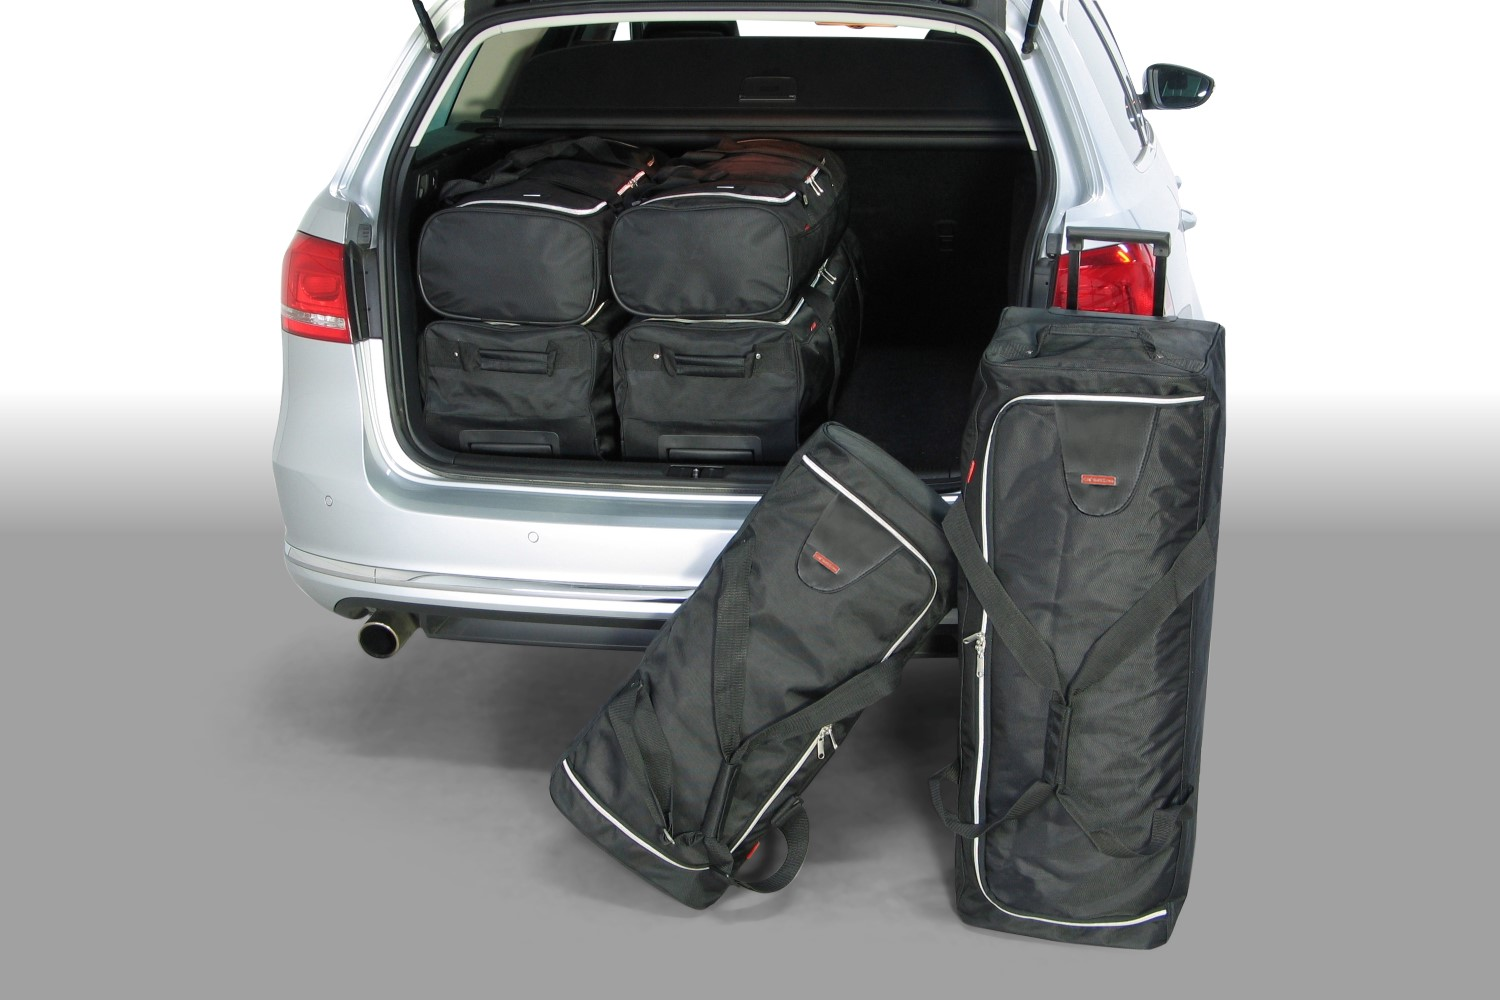 vw passat b7 variant car travel bags car parts expert. Black Bedroom Furniture Sets. Home Design Ideas